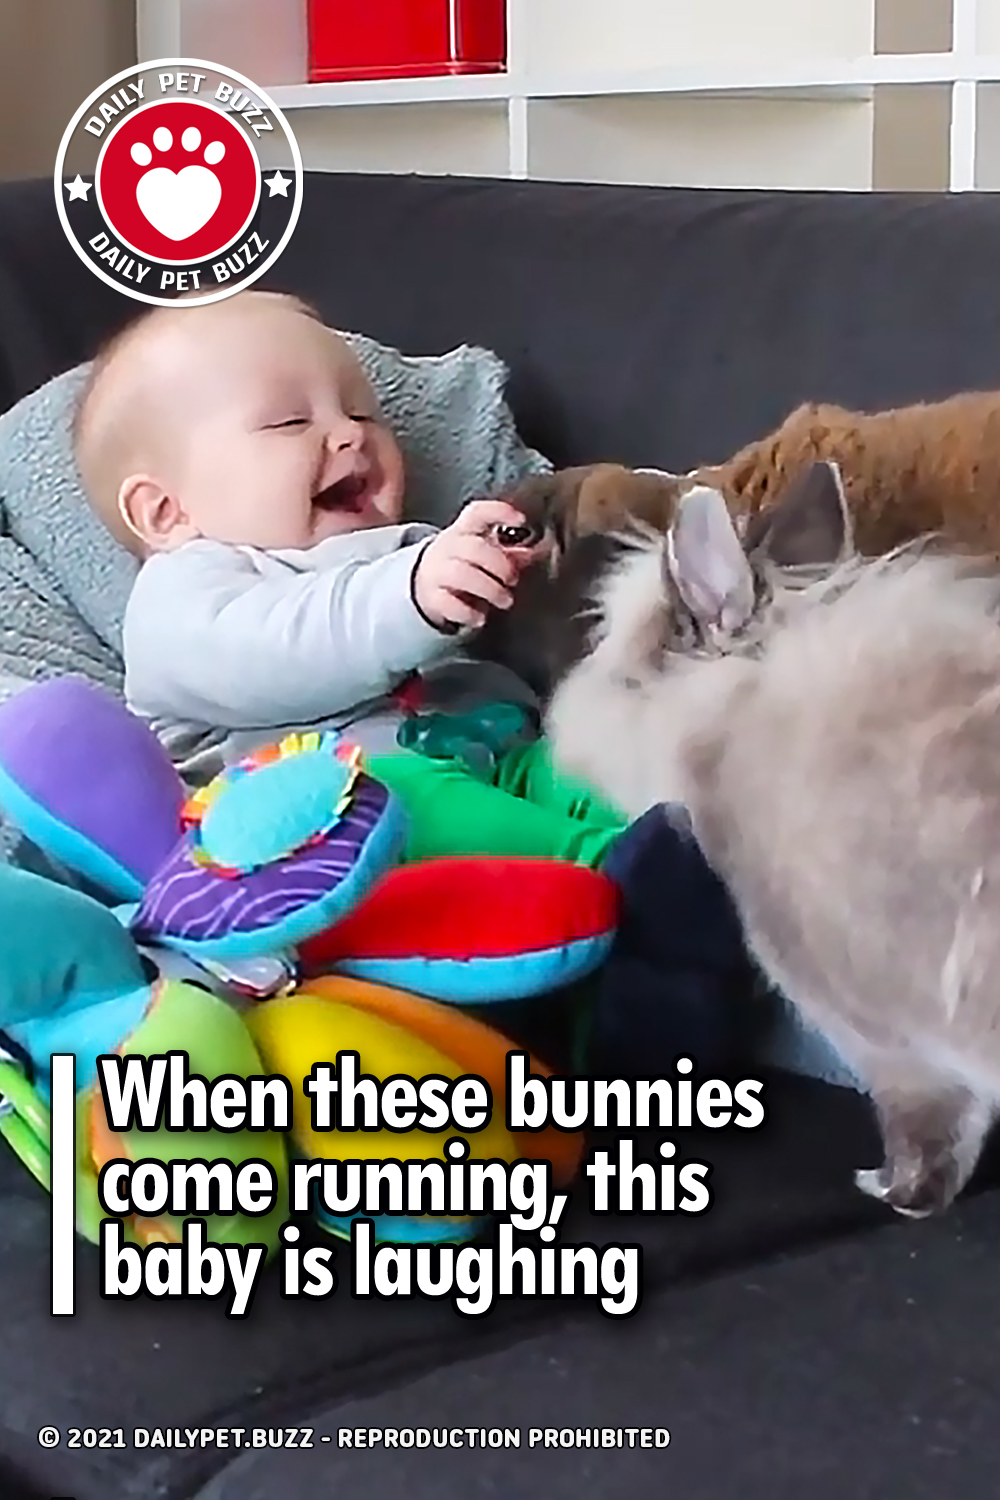 When these bunnies come running, this baby is laughing